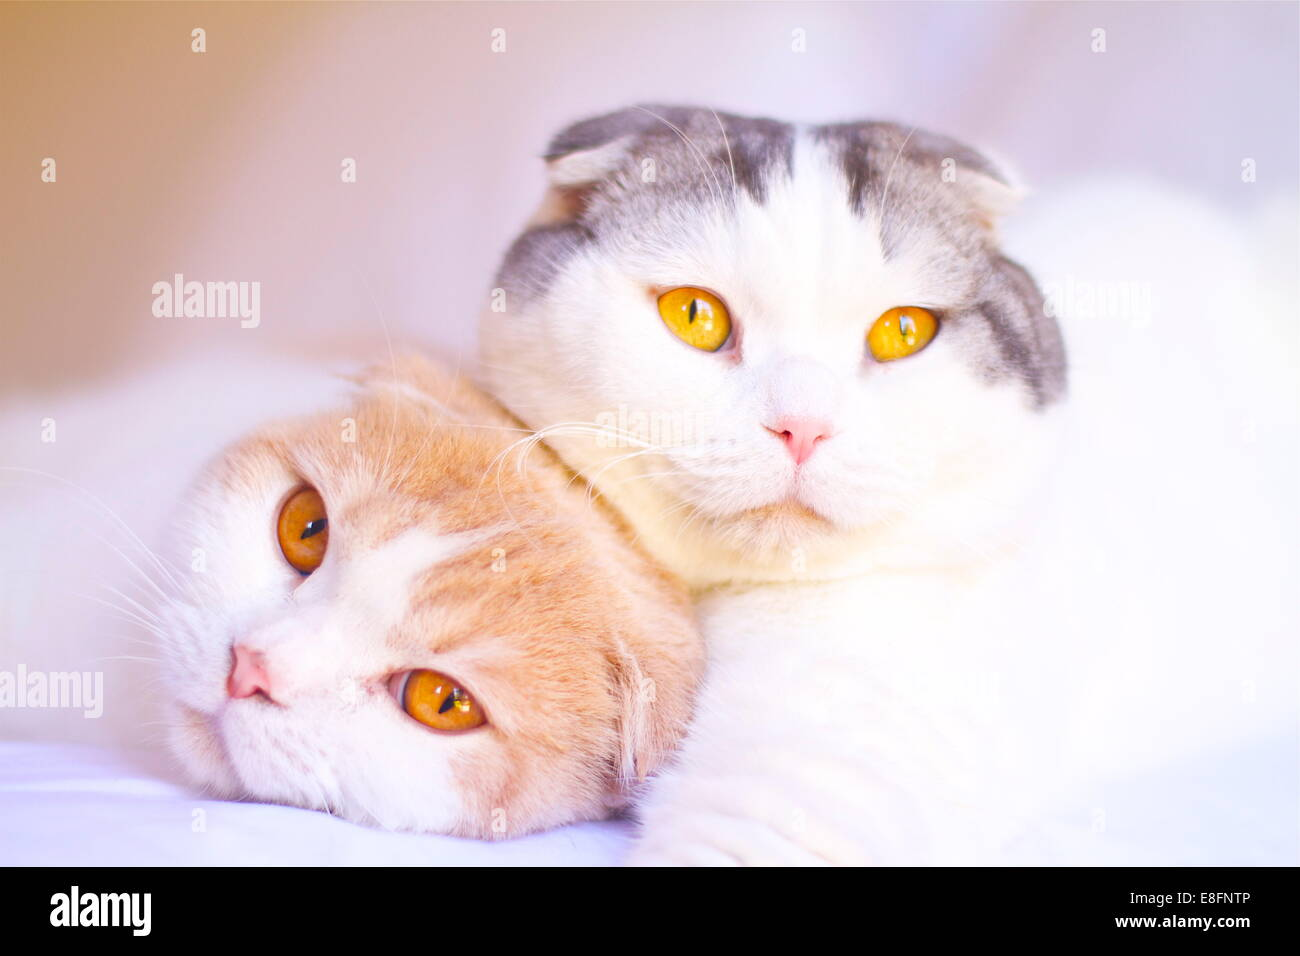 Portrait of two Scottish Fold cats lying on a bed together - Stock Image